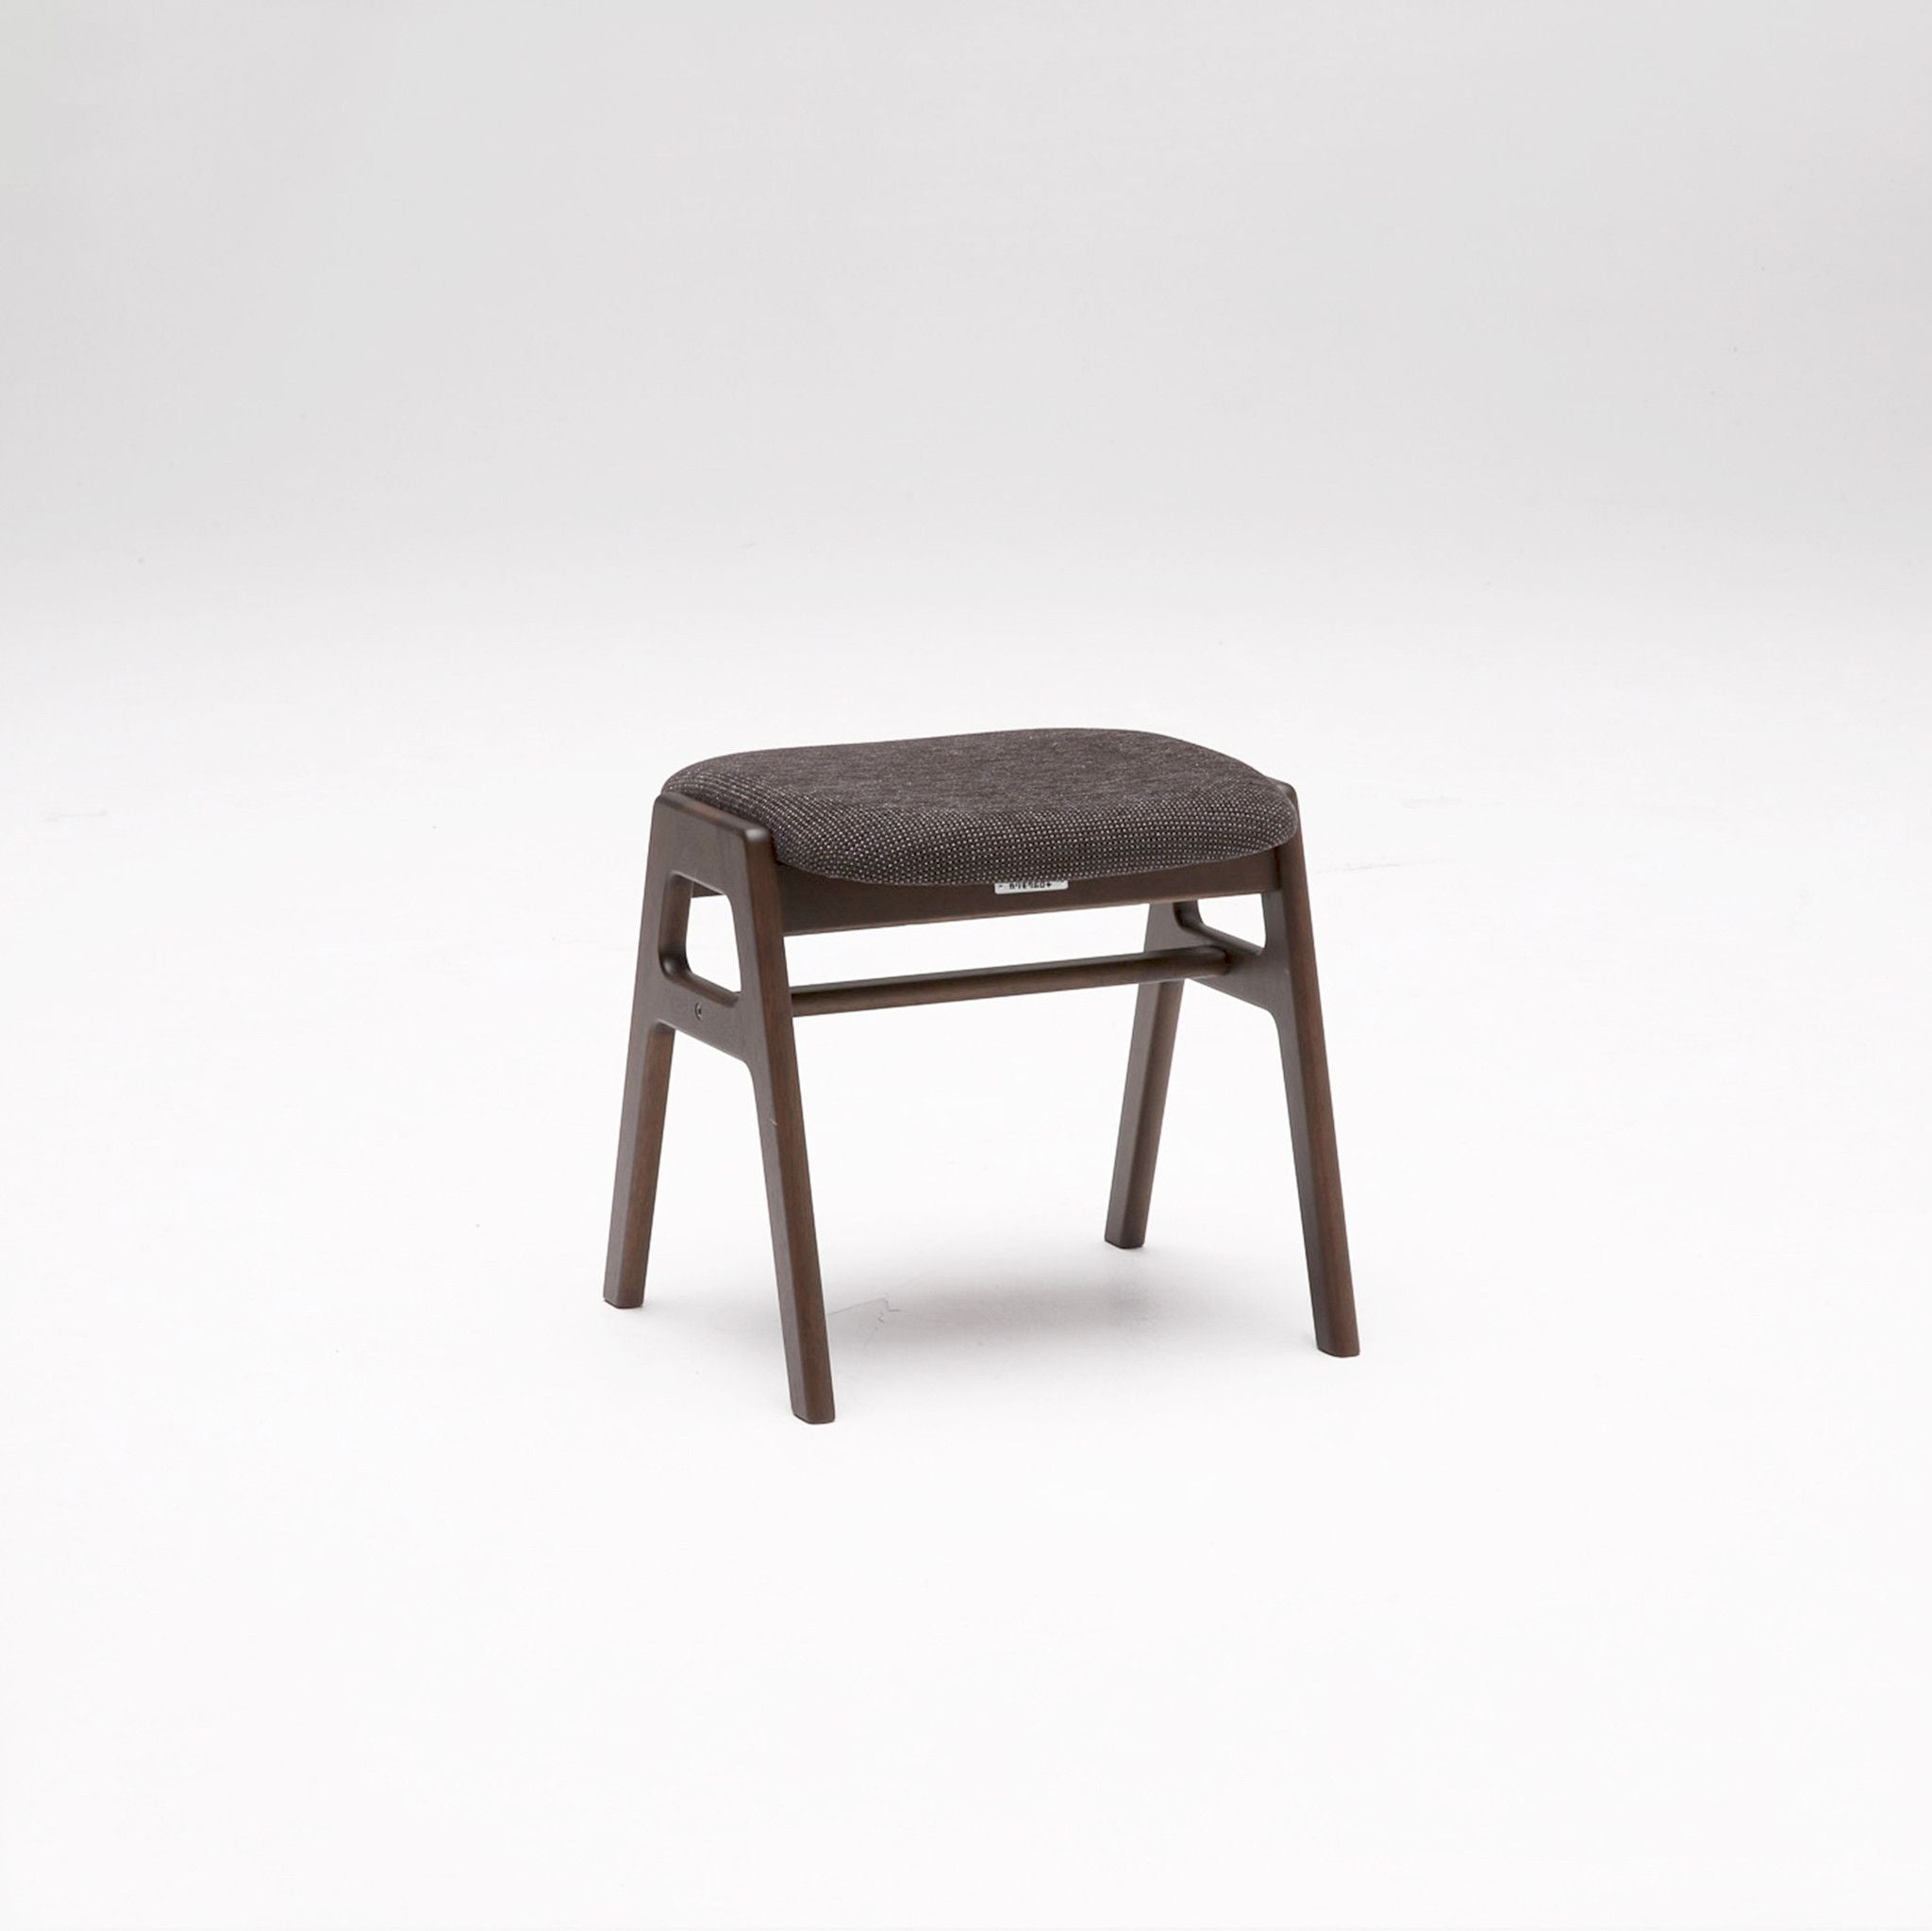 stacking stool milan black - Stool - Karimoku60